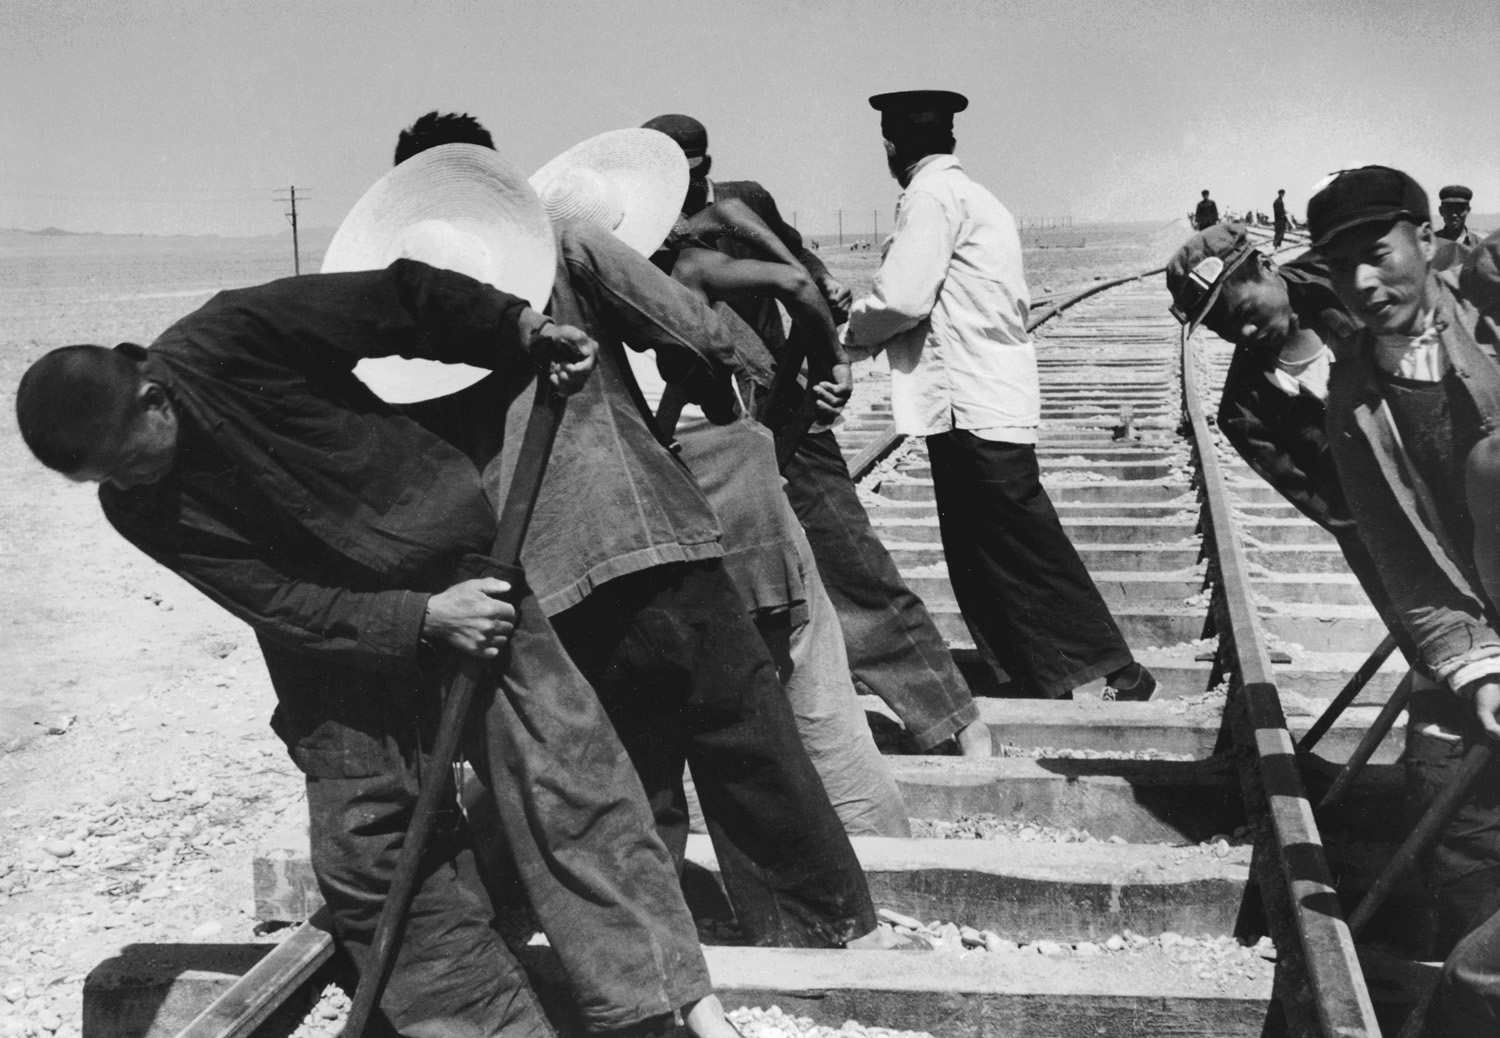 Men working on the Sinkiang railway in the Gobi Desert. China, July 1956.  (RDH C081-25)